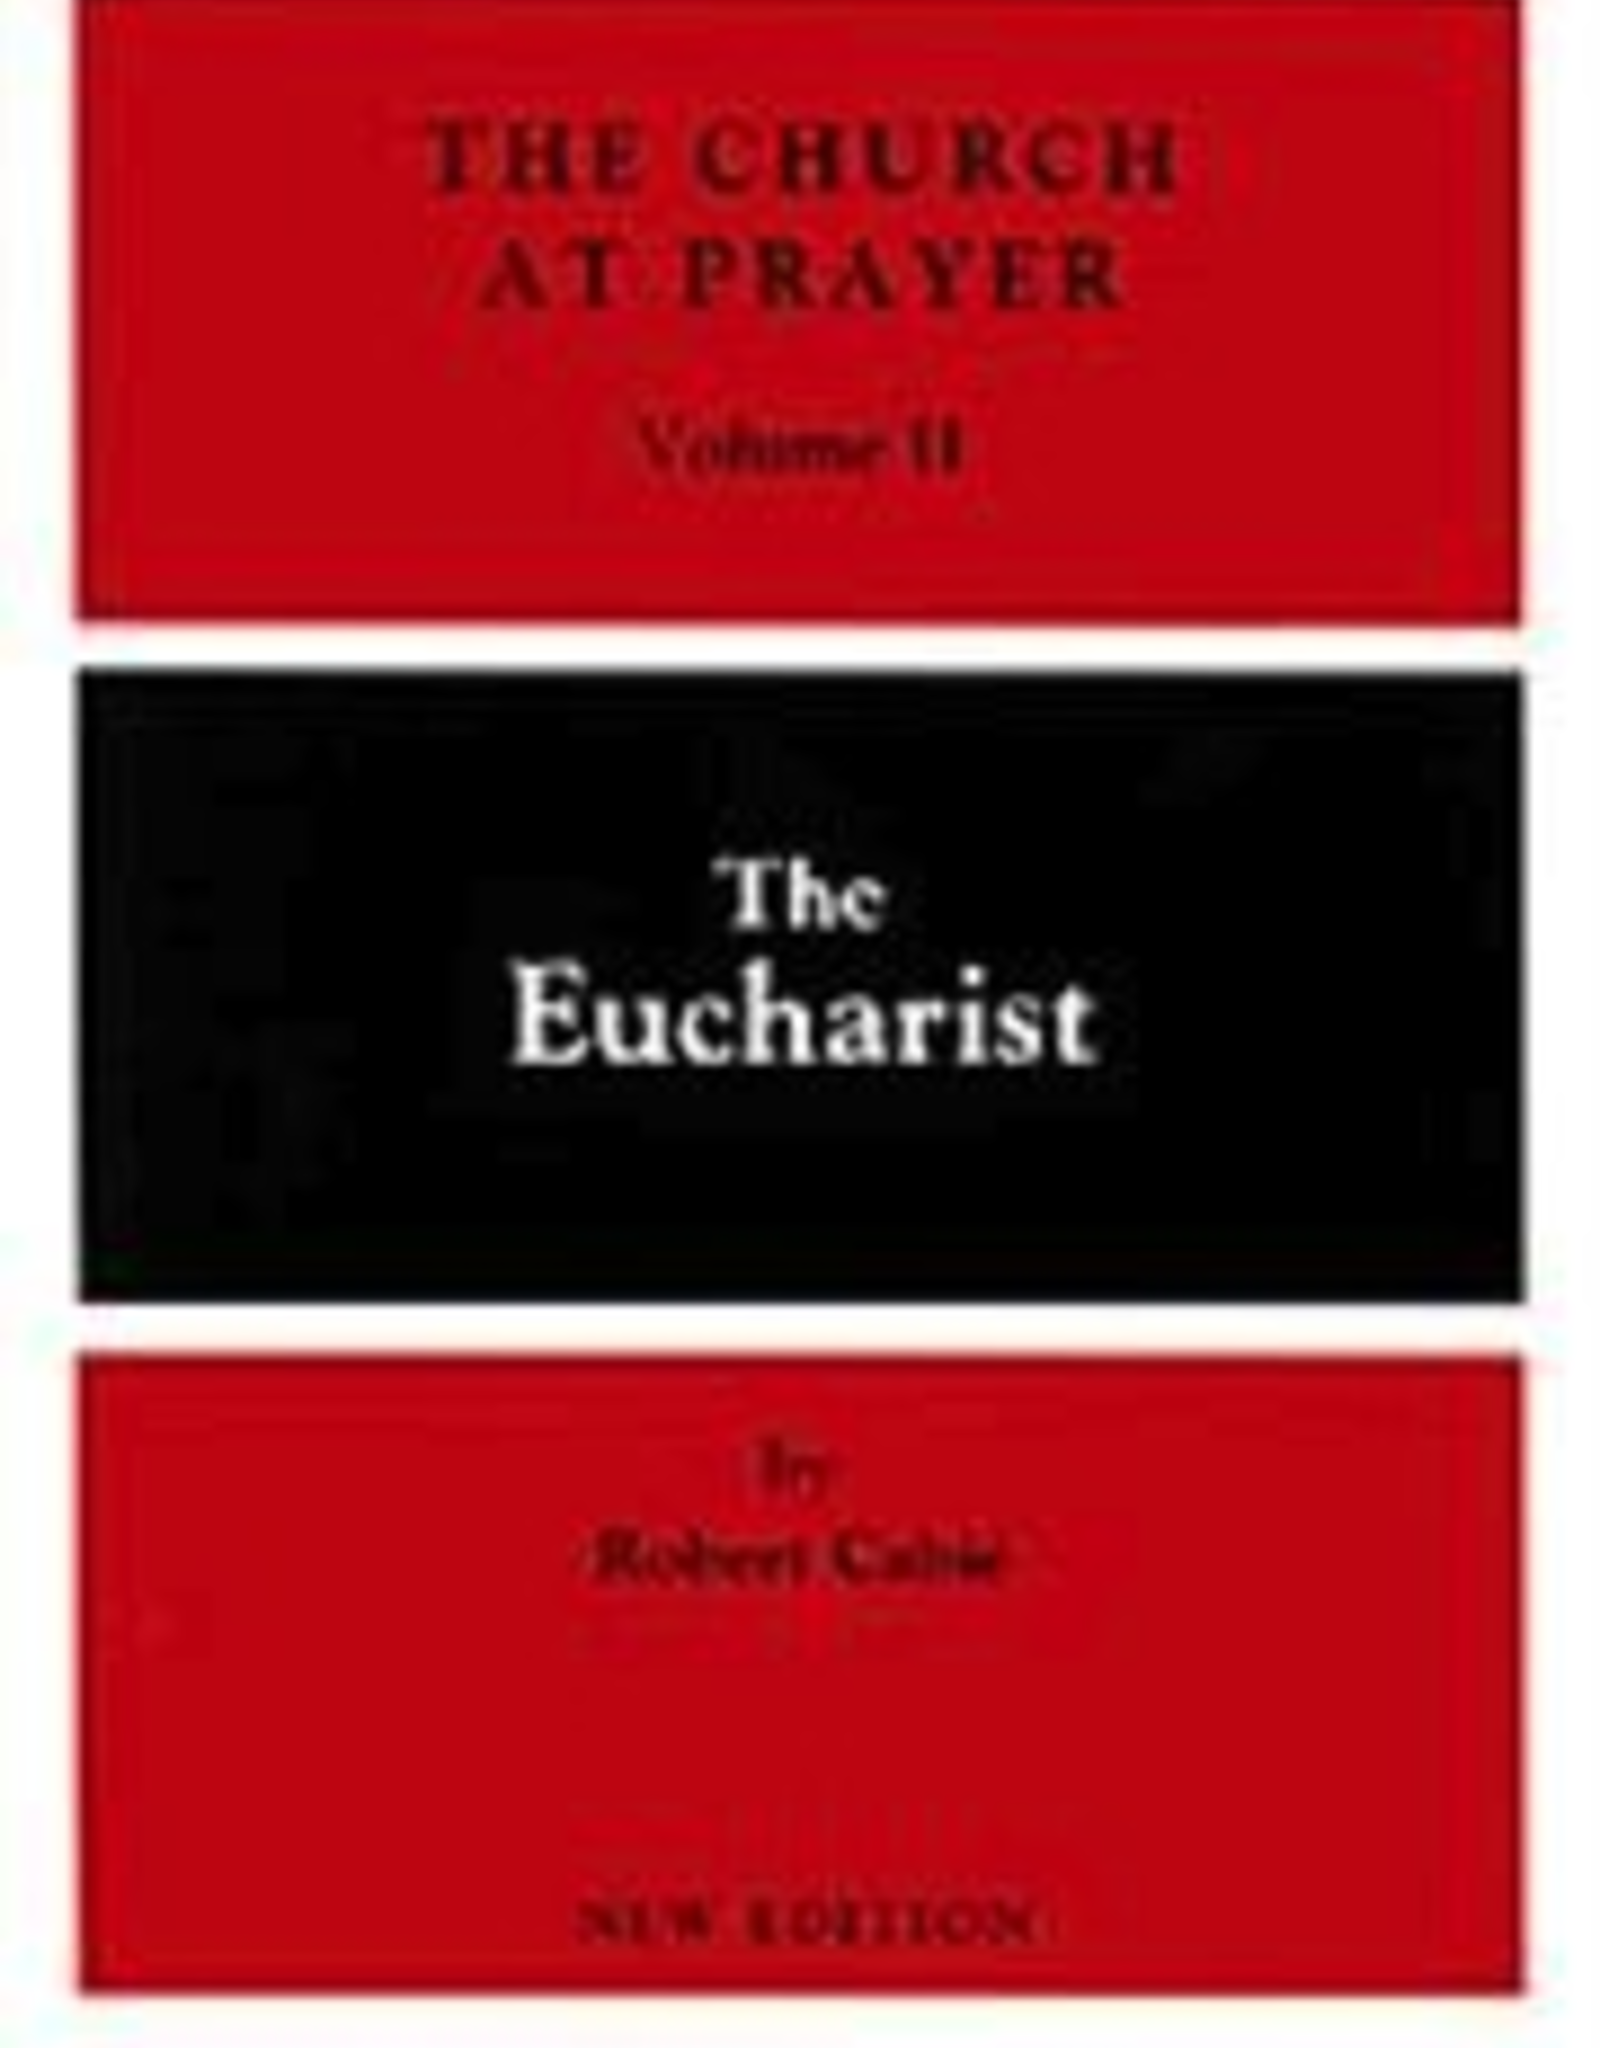 Liturgical Press The Eucharist (The Church and Prayer:  Volume III), by Robert Cabie (paperback)